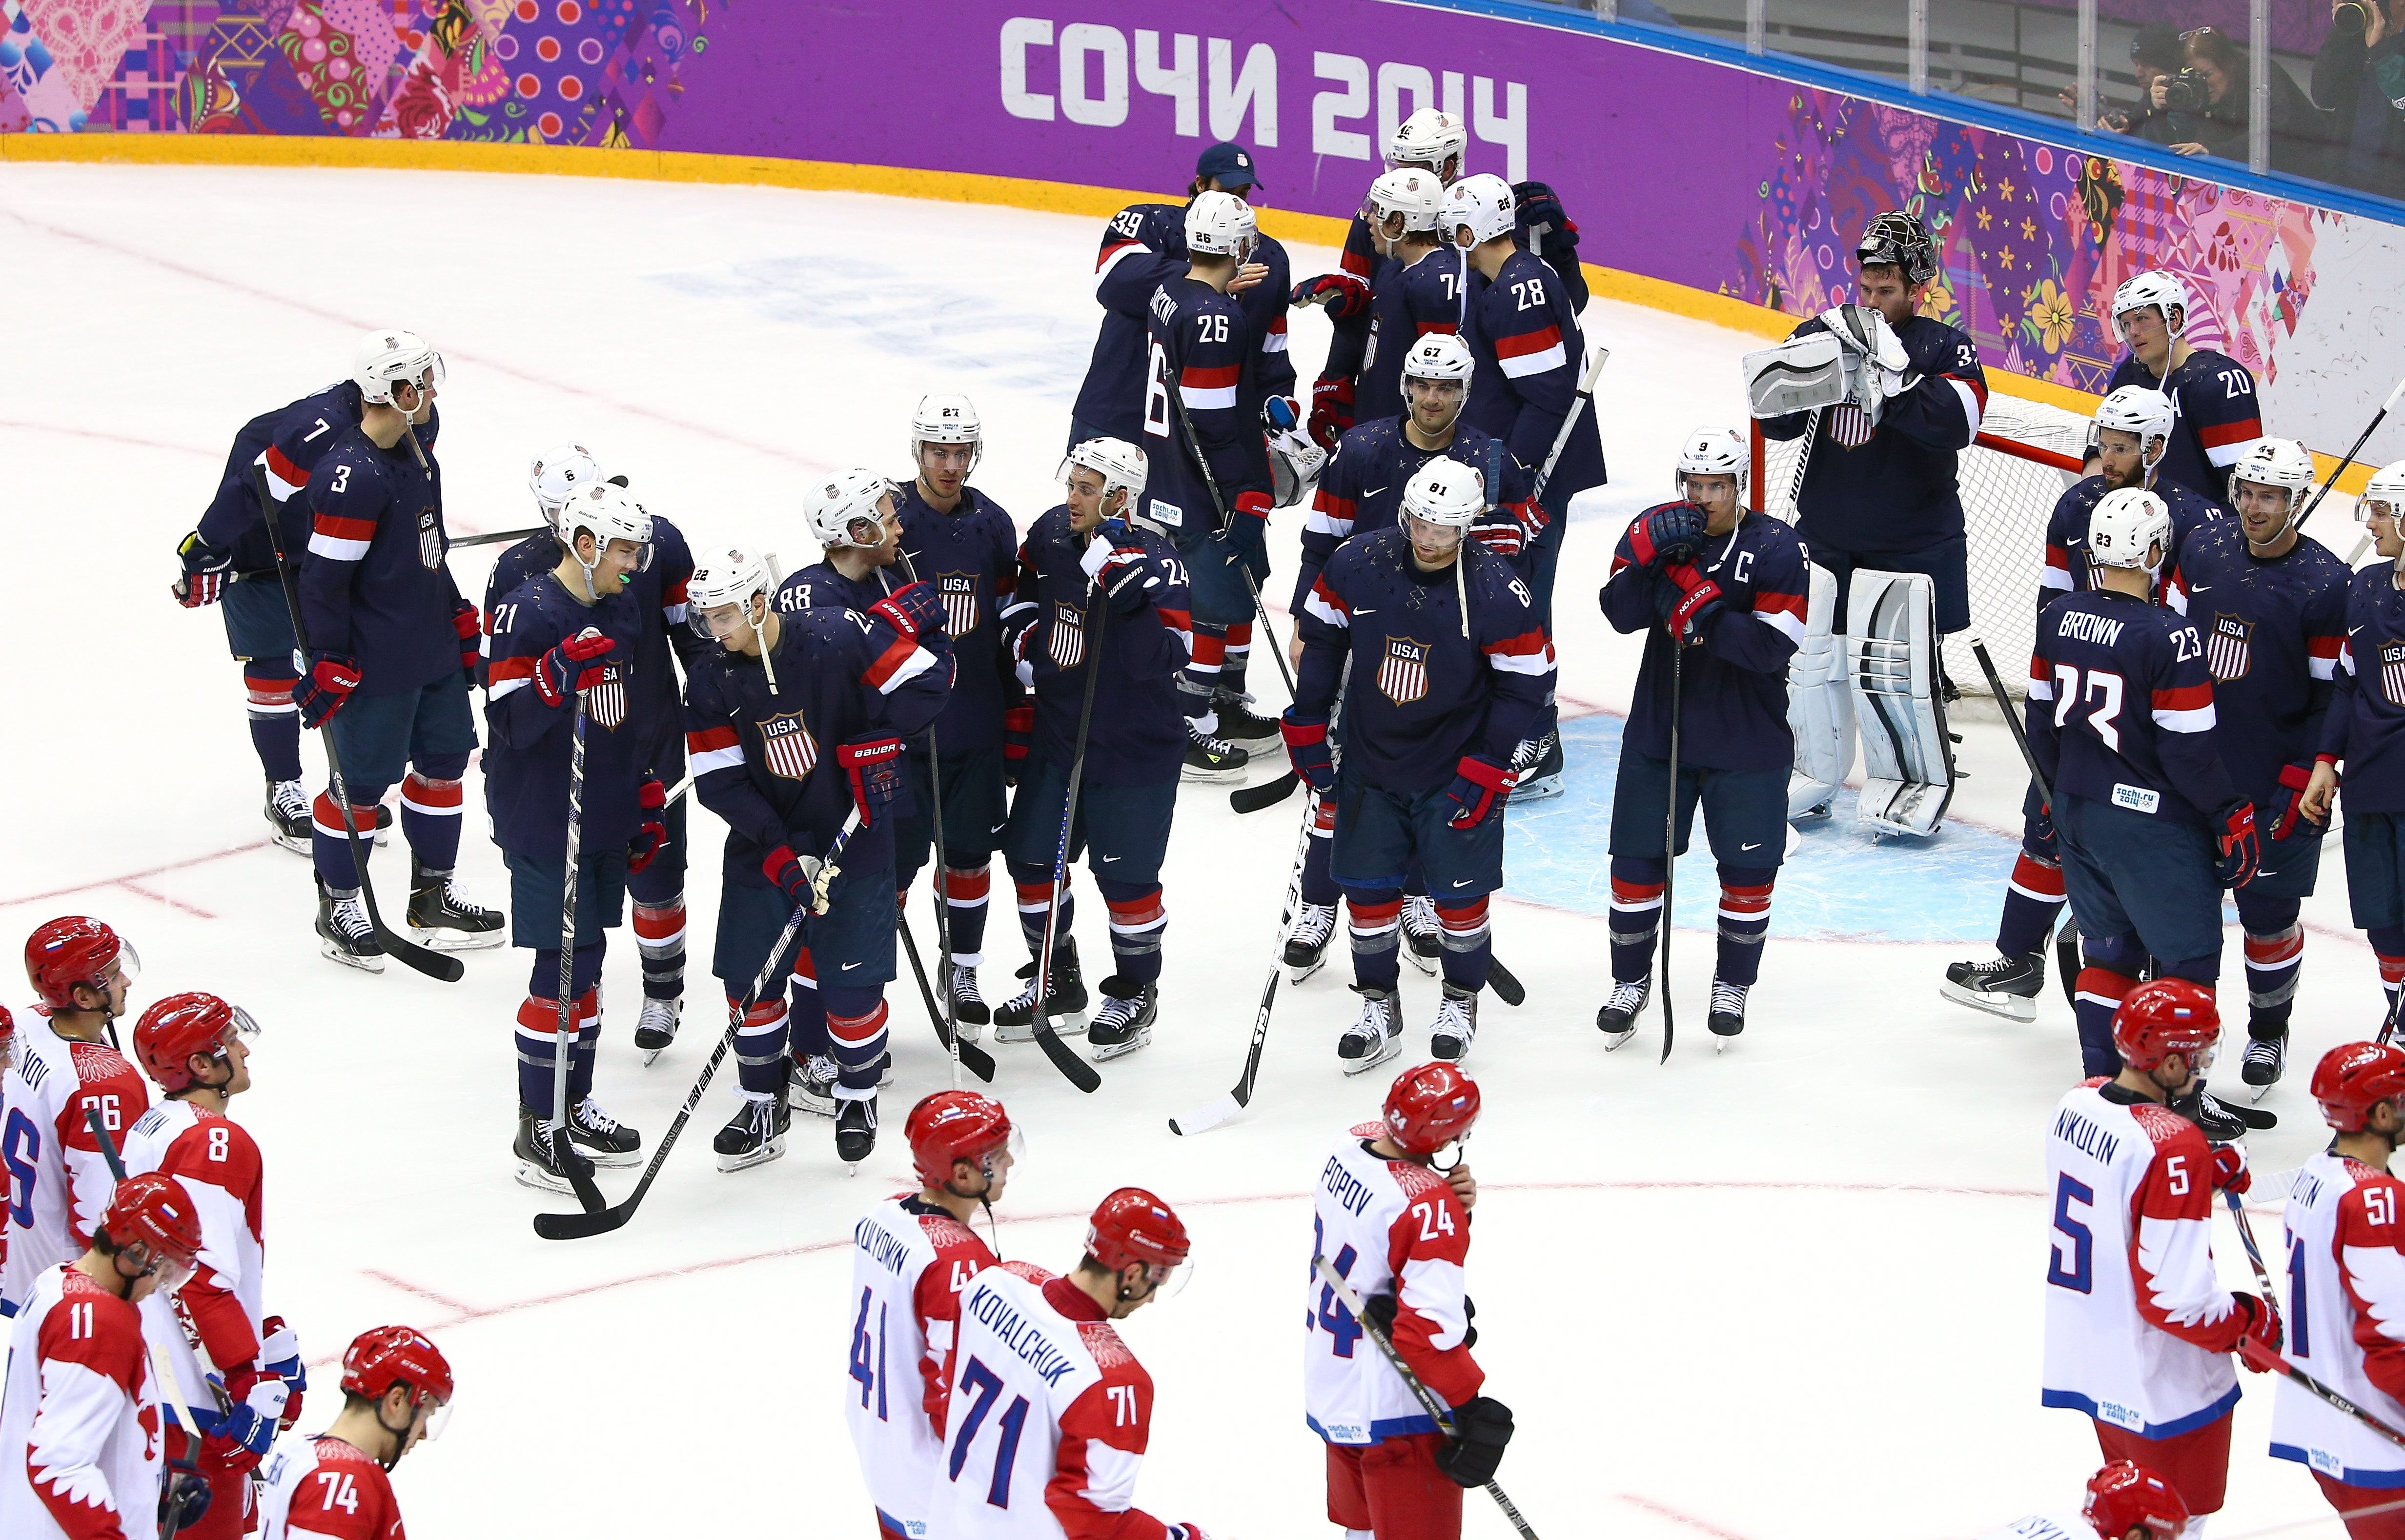 The U.S. men's hockey team celebrates after defeating Russia in a shootout in an intense game that made a powerful argument for keeping NHL stars in the Winter Olympics.